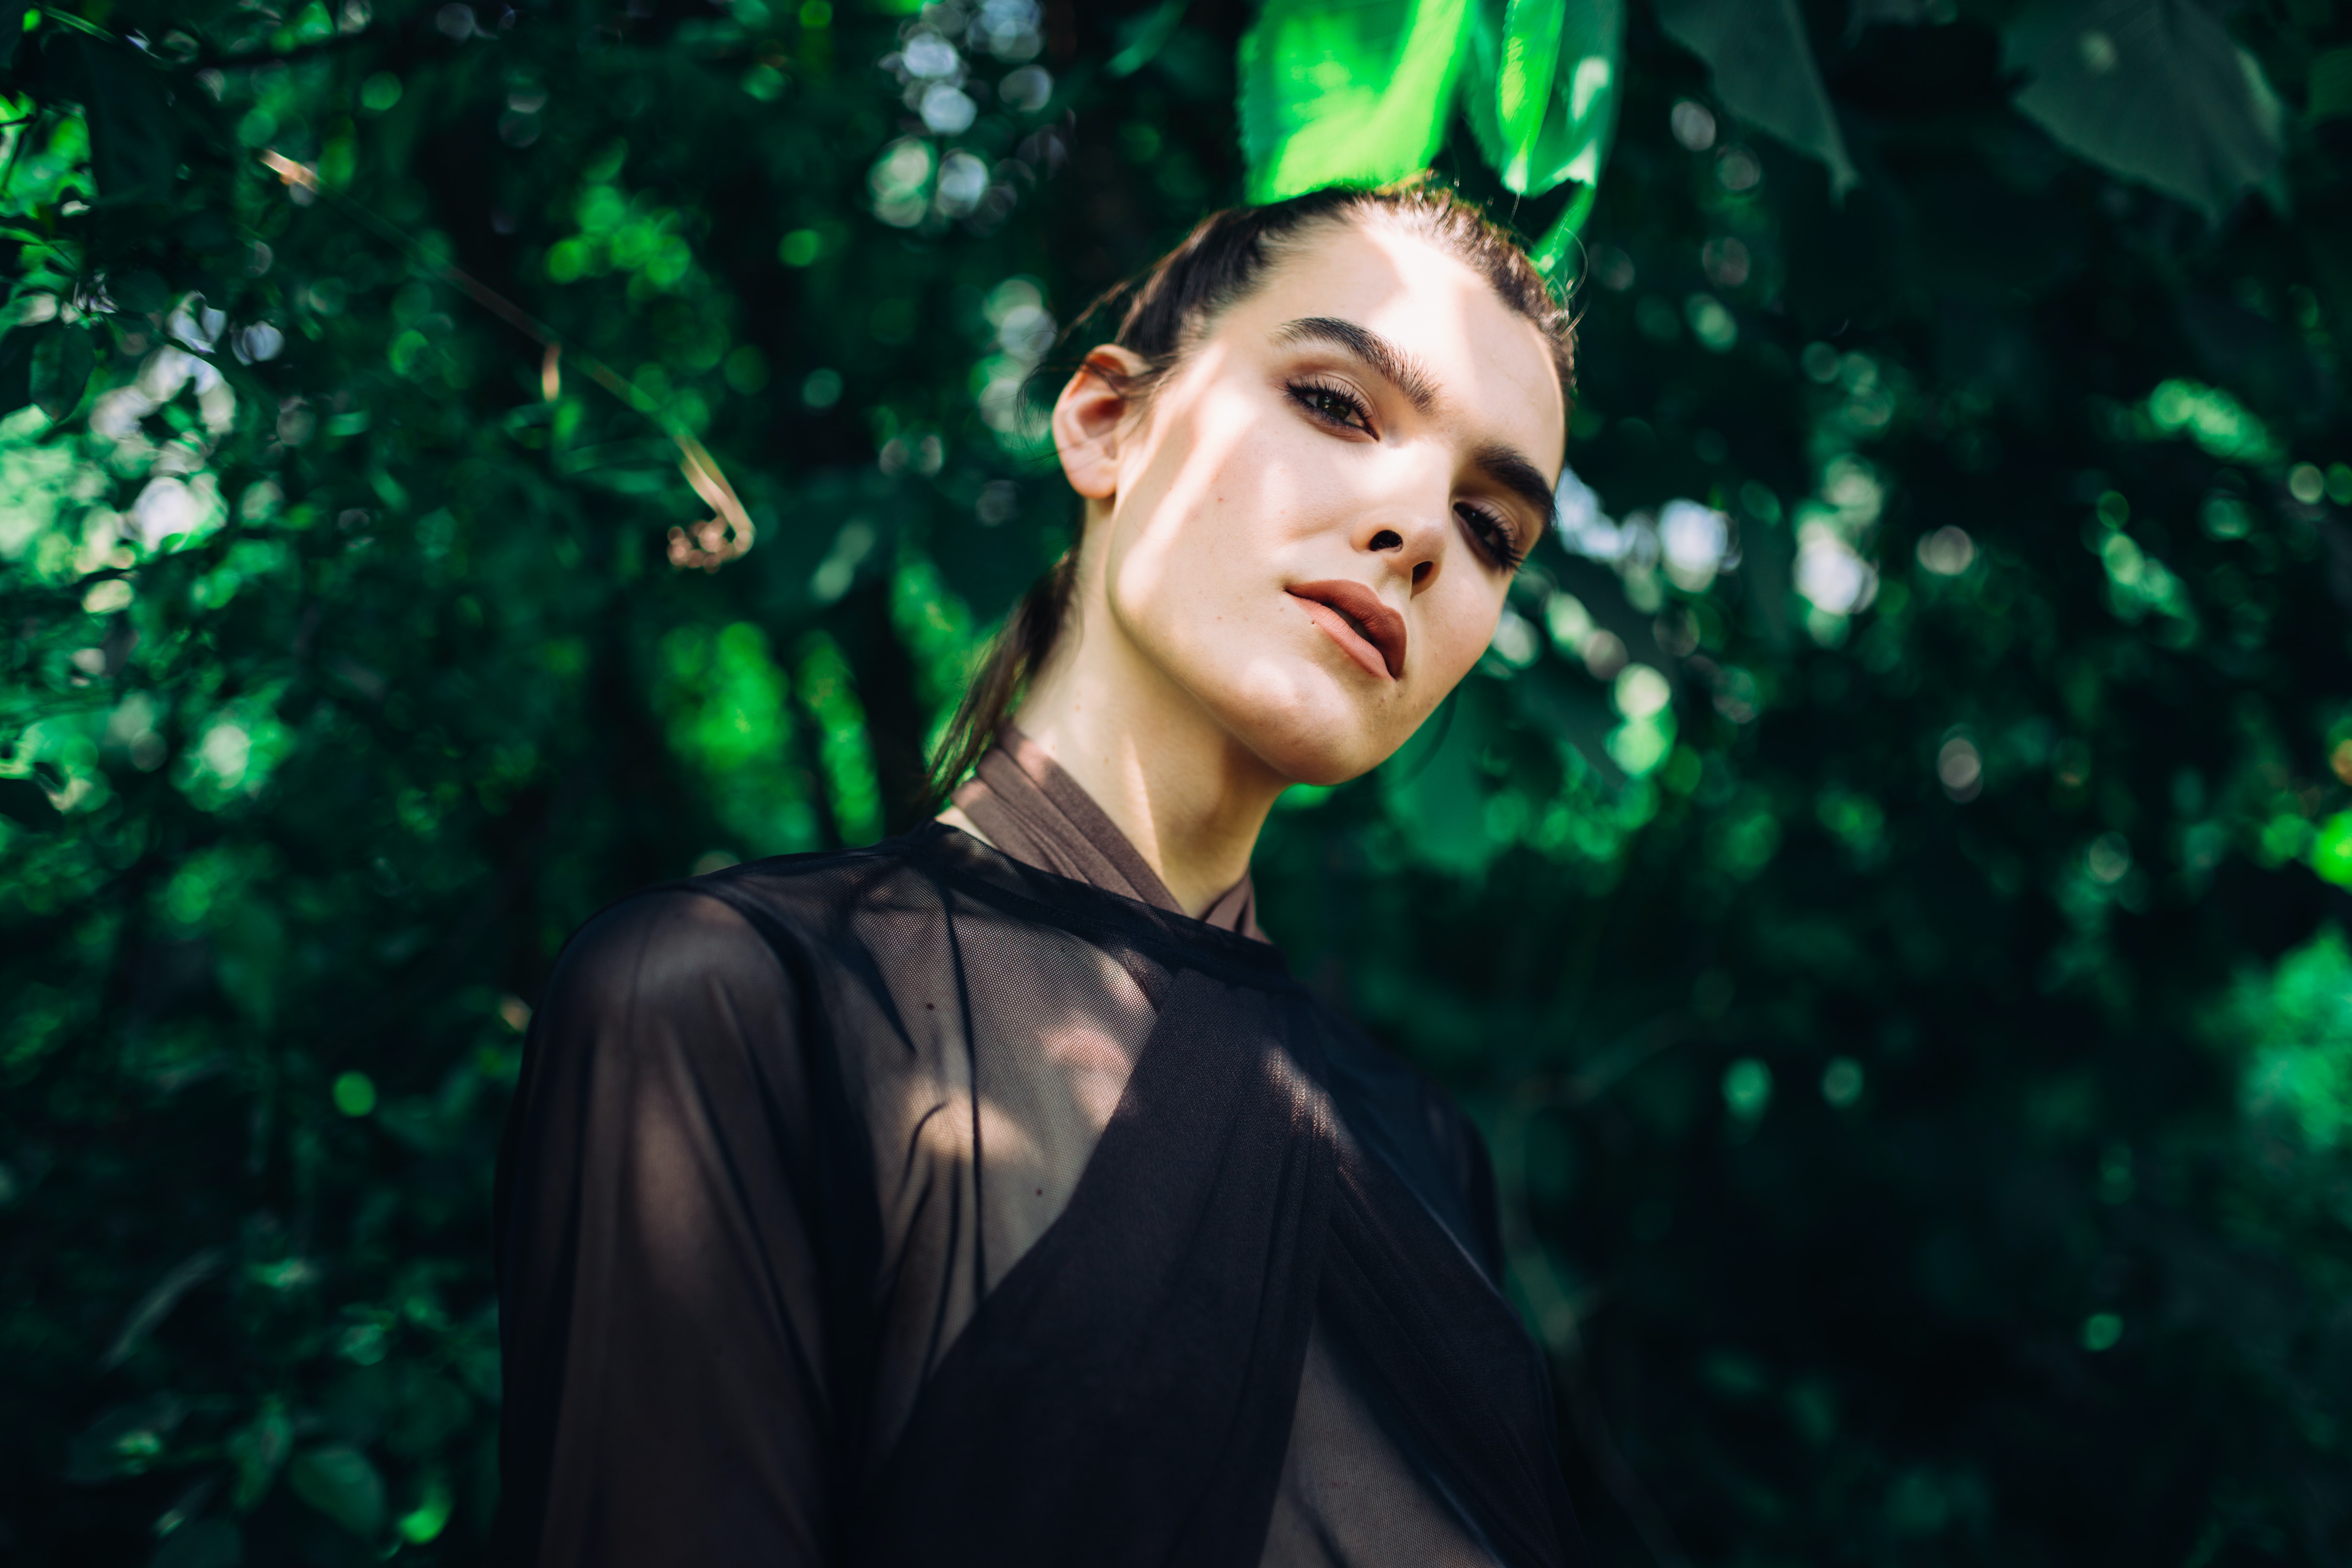 woman wearing sheer top under green leafed plant